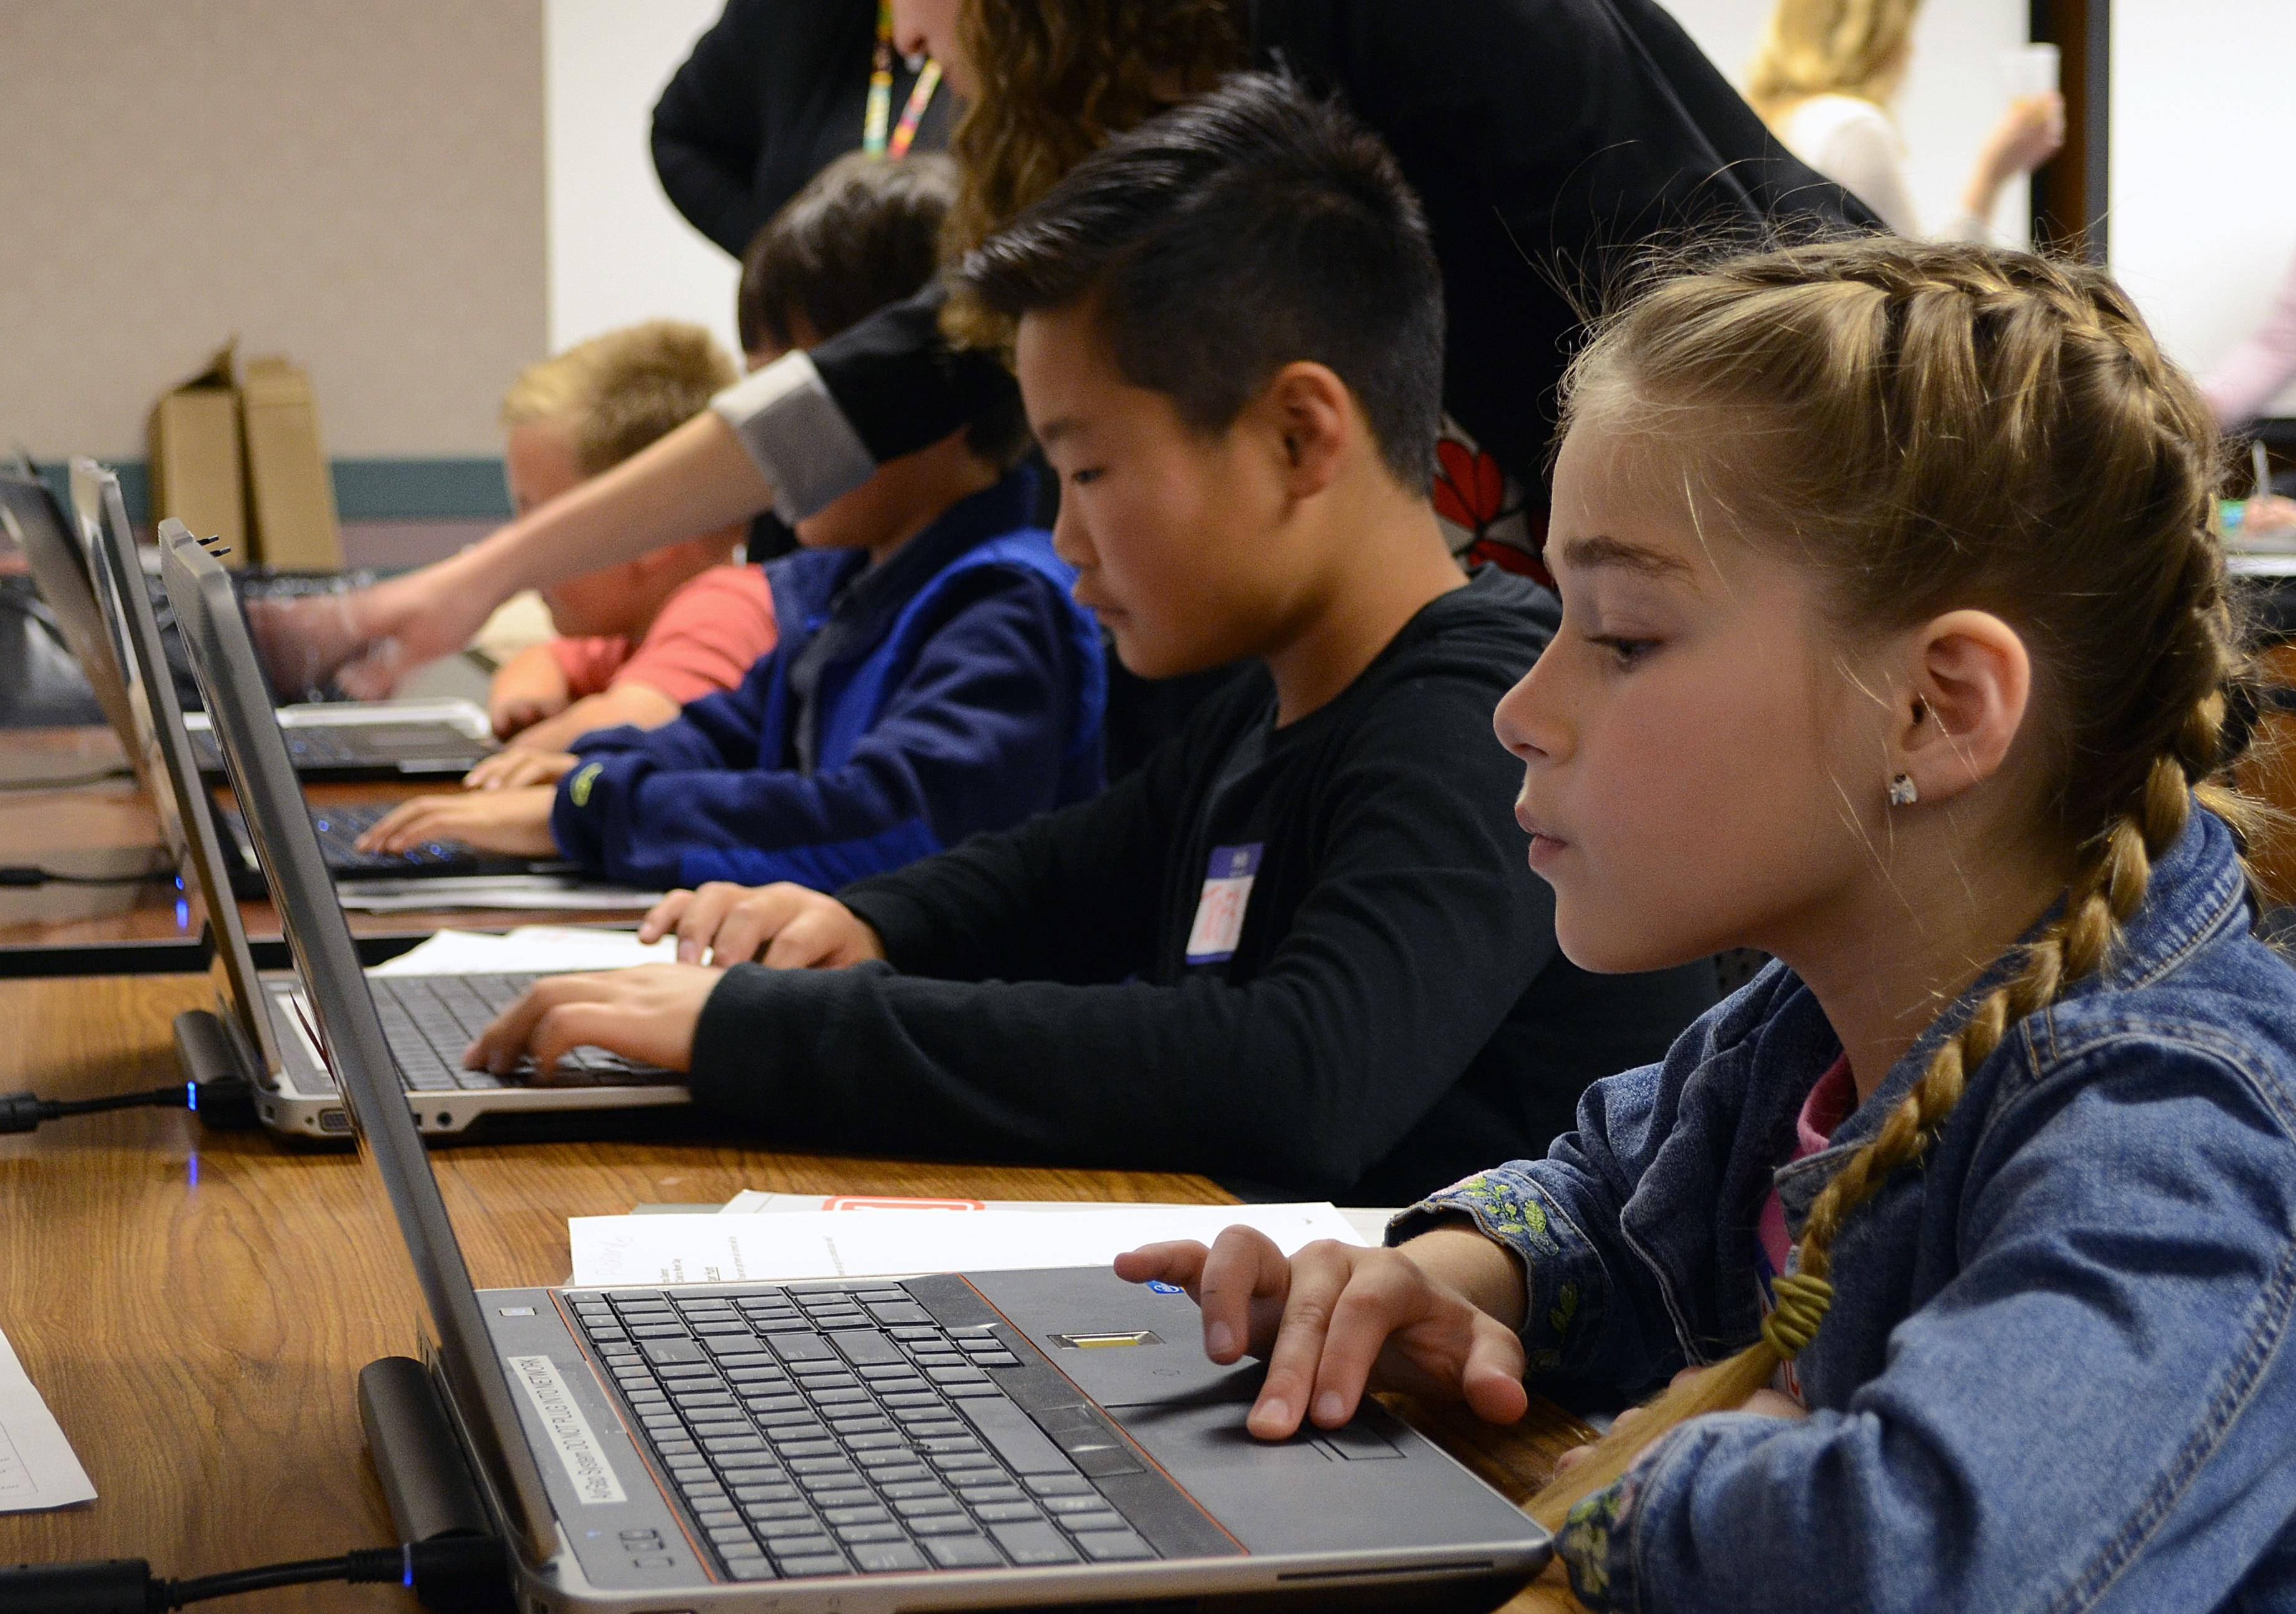 Launch Code After School image 8